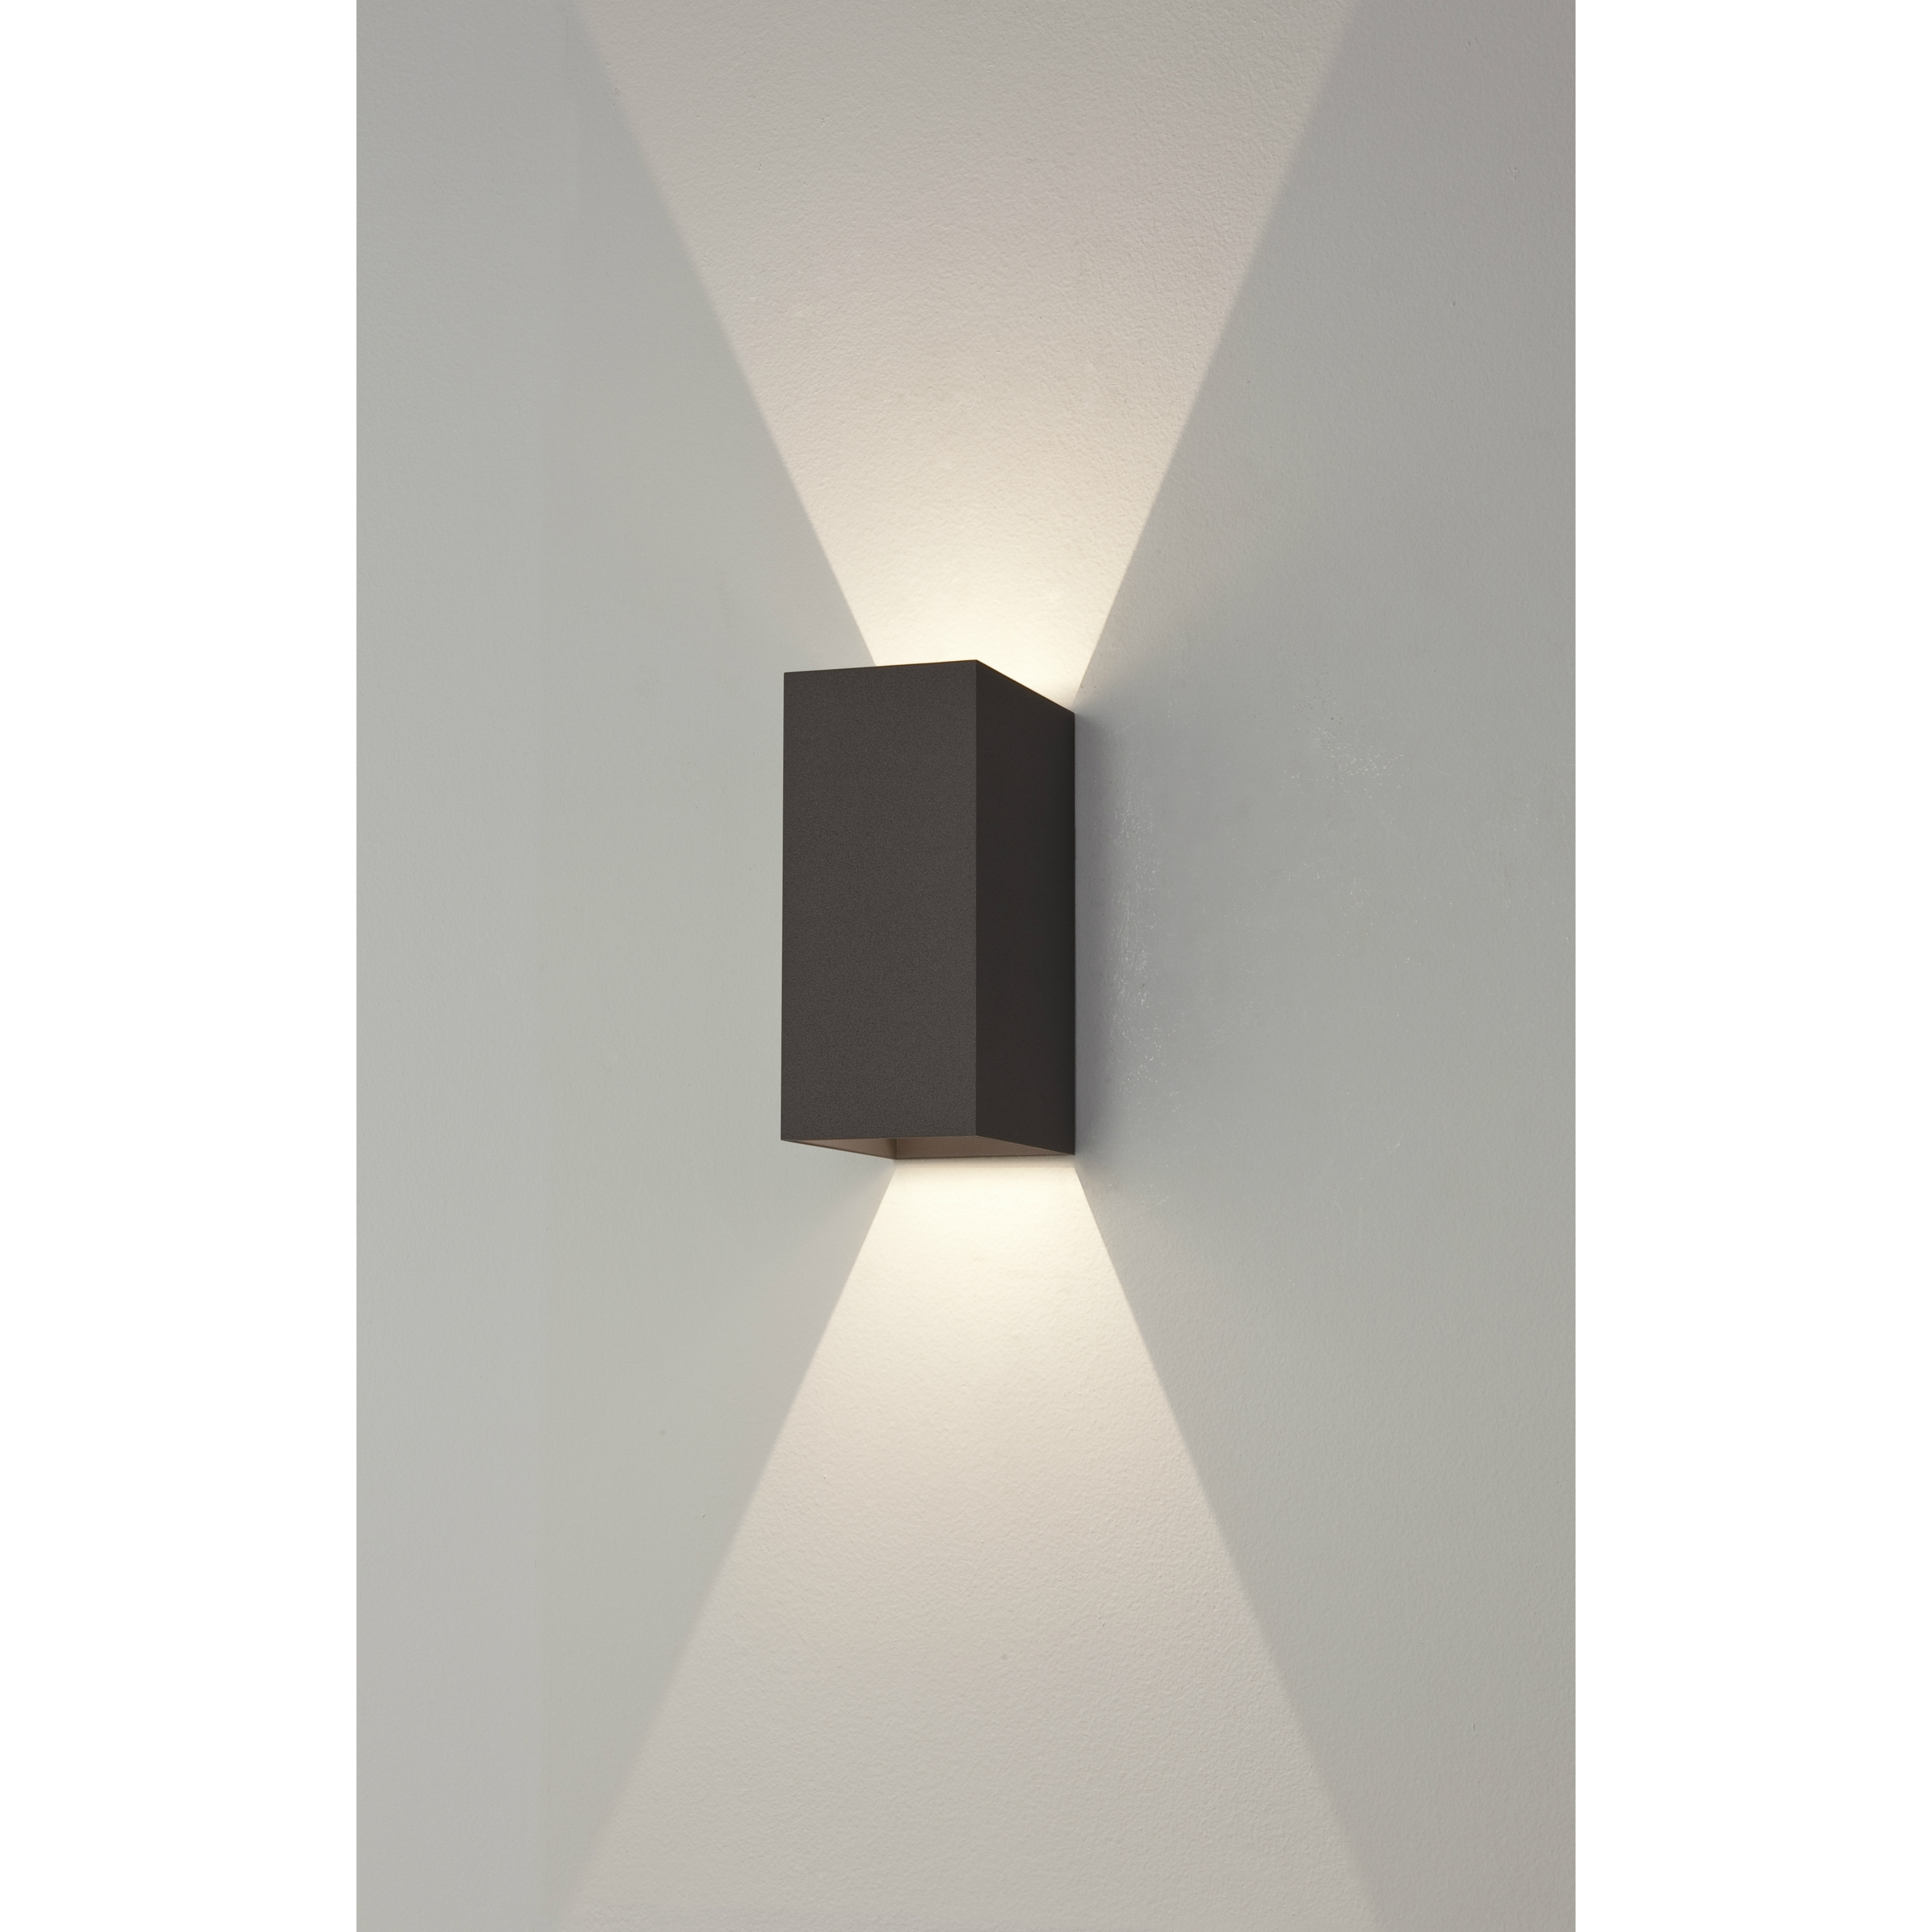 Outdoor Corner Wall Lighting Inside Best And Newest Outdoor Corner Wall Light – Outdoor Designs (View 9 of 20)